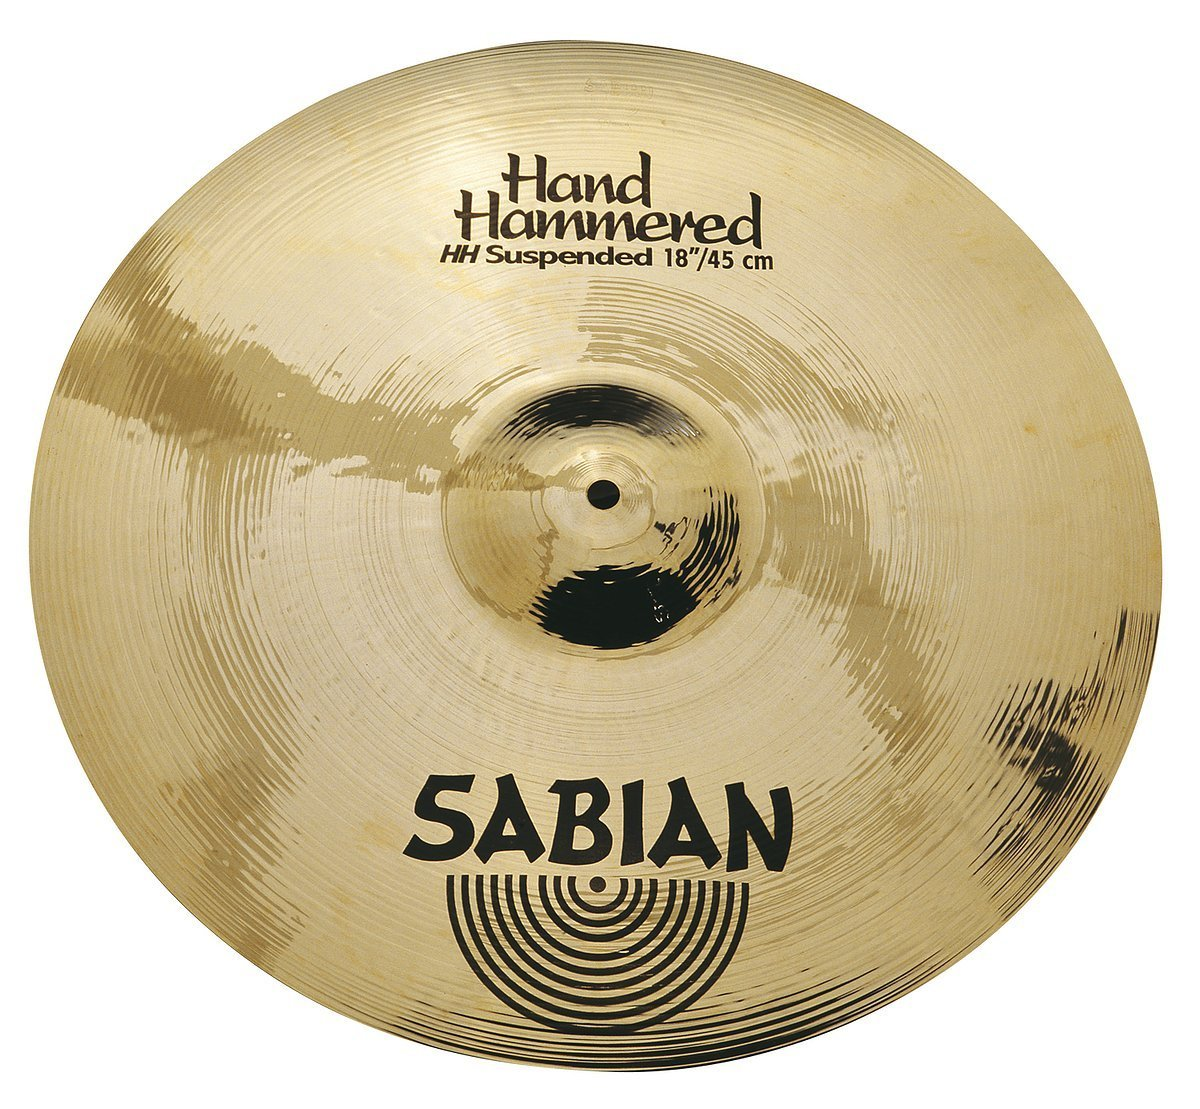 Sabian 19'' HH Suspended, Brass, inch (11923) by Sabian